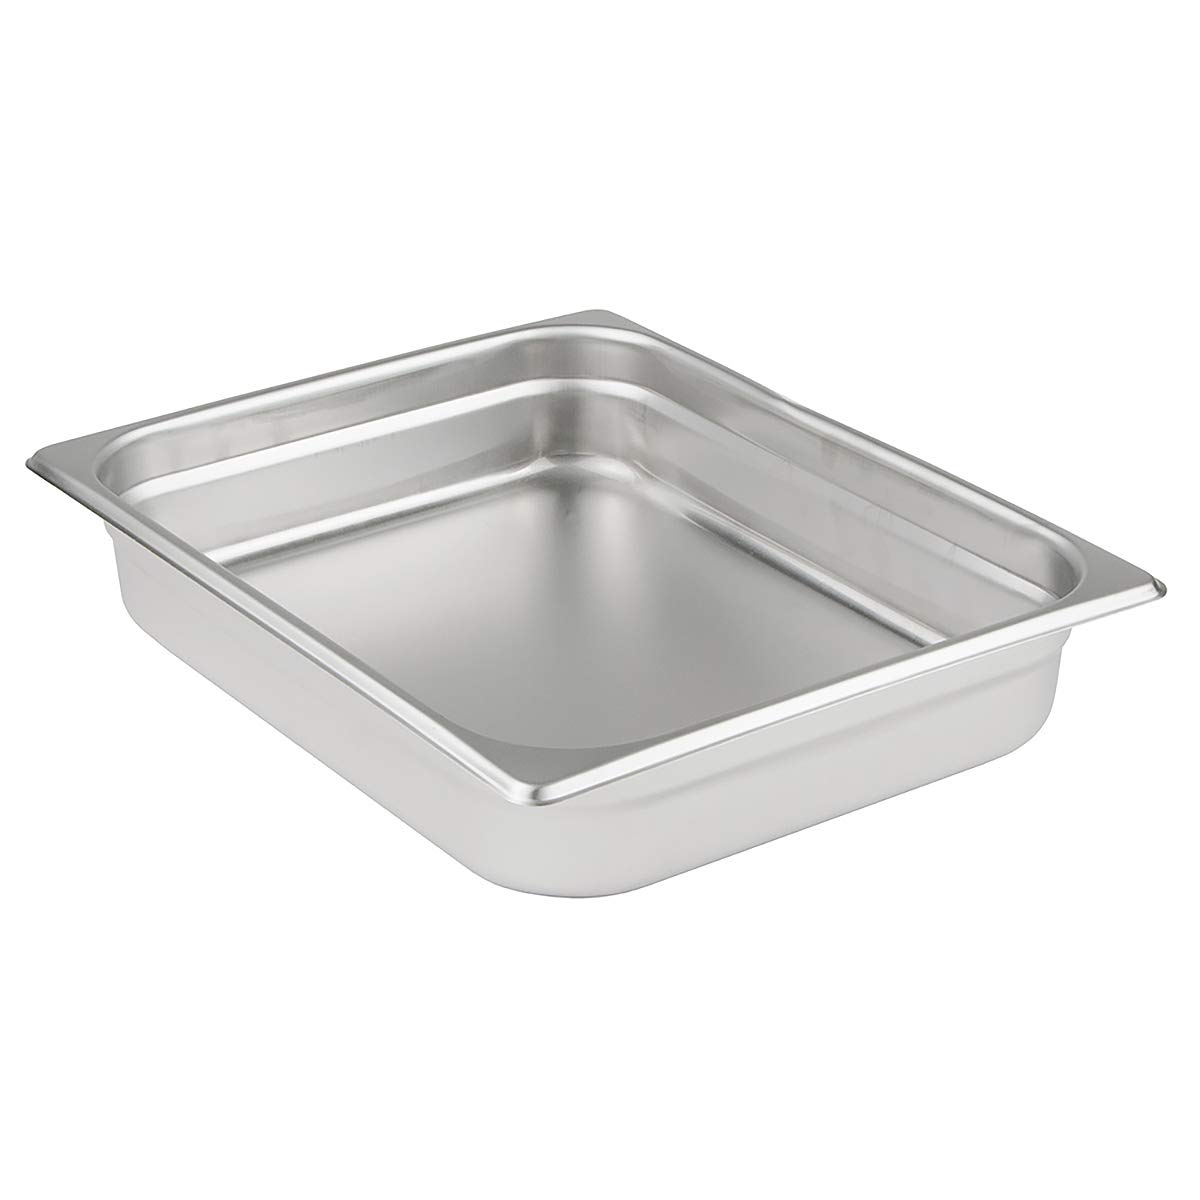 Update International NJP-506 6-Inch Half-Size Anti-Jam Steam Table Pan, Silver 3036